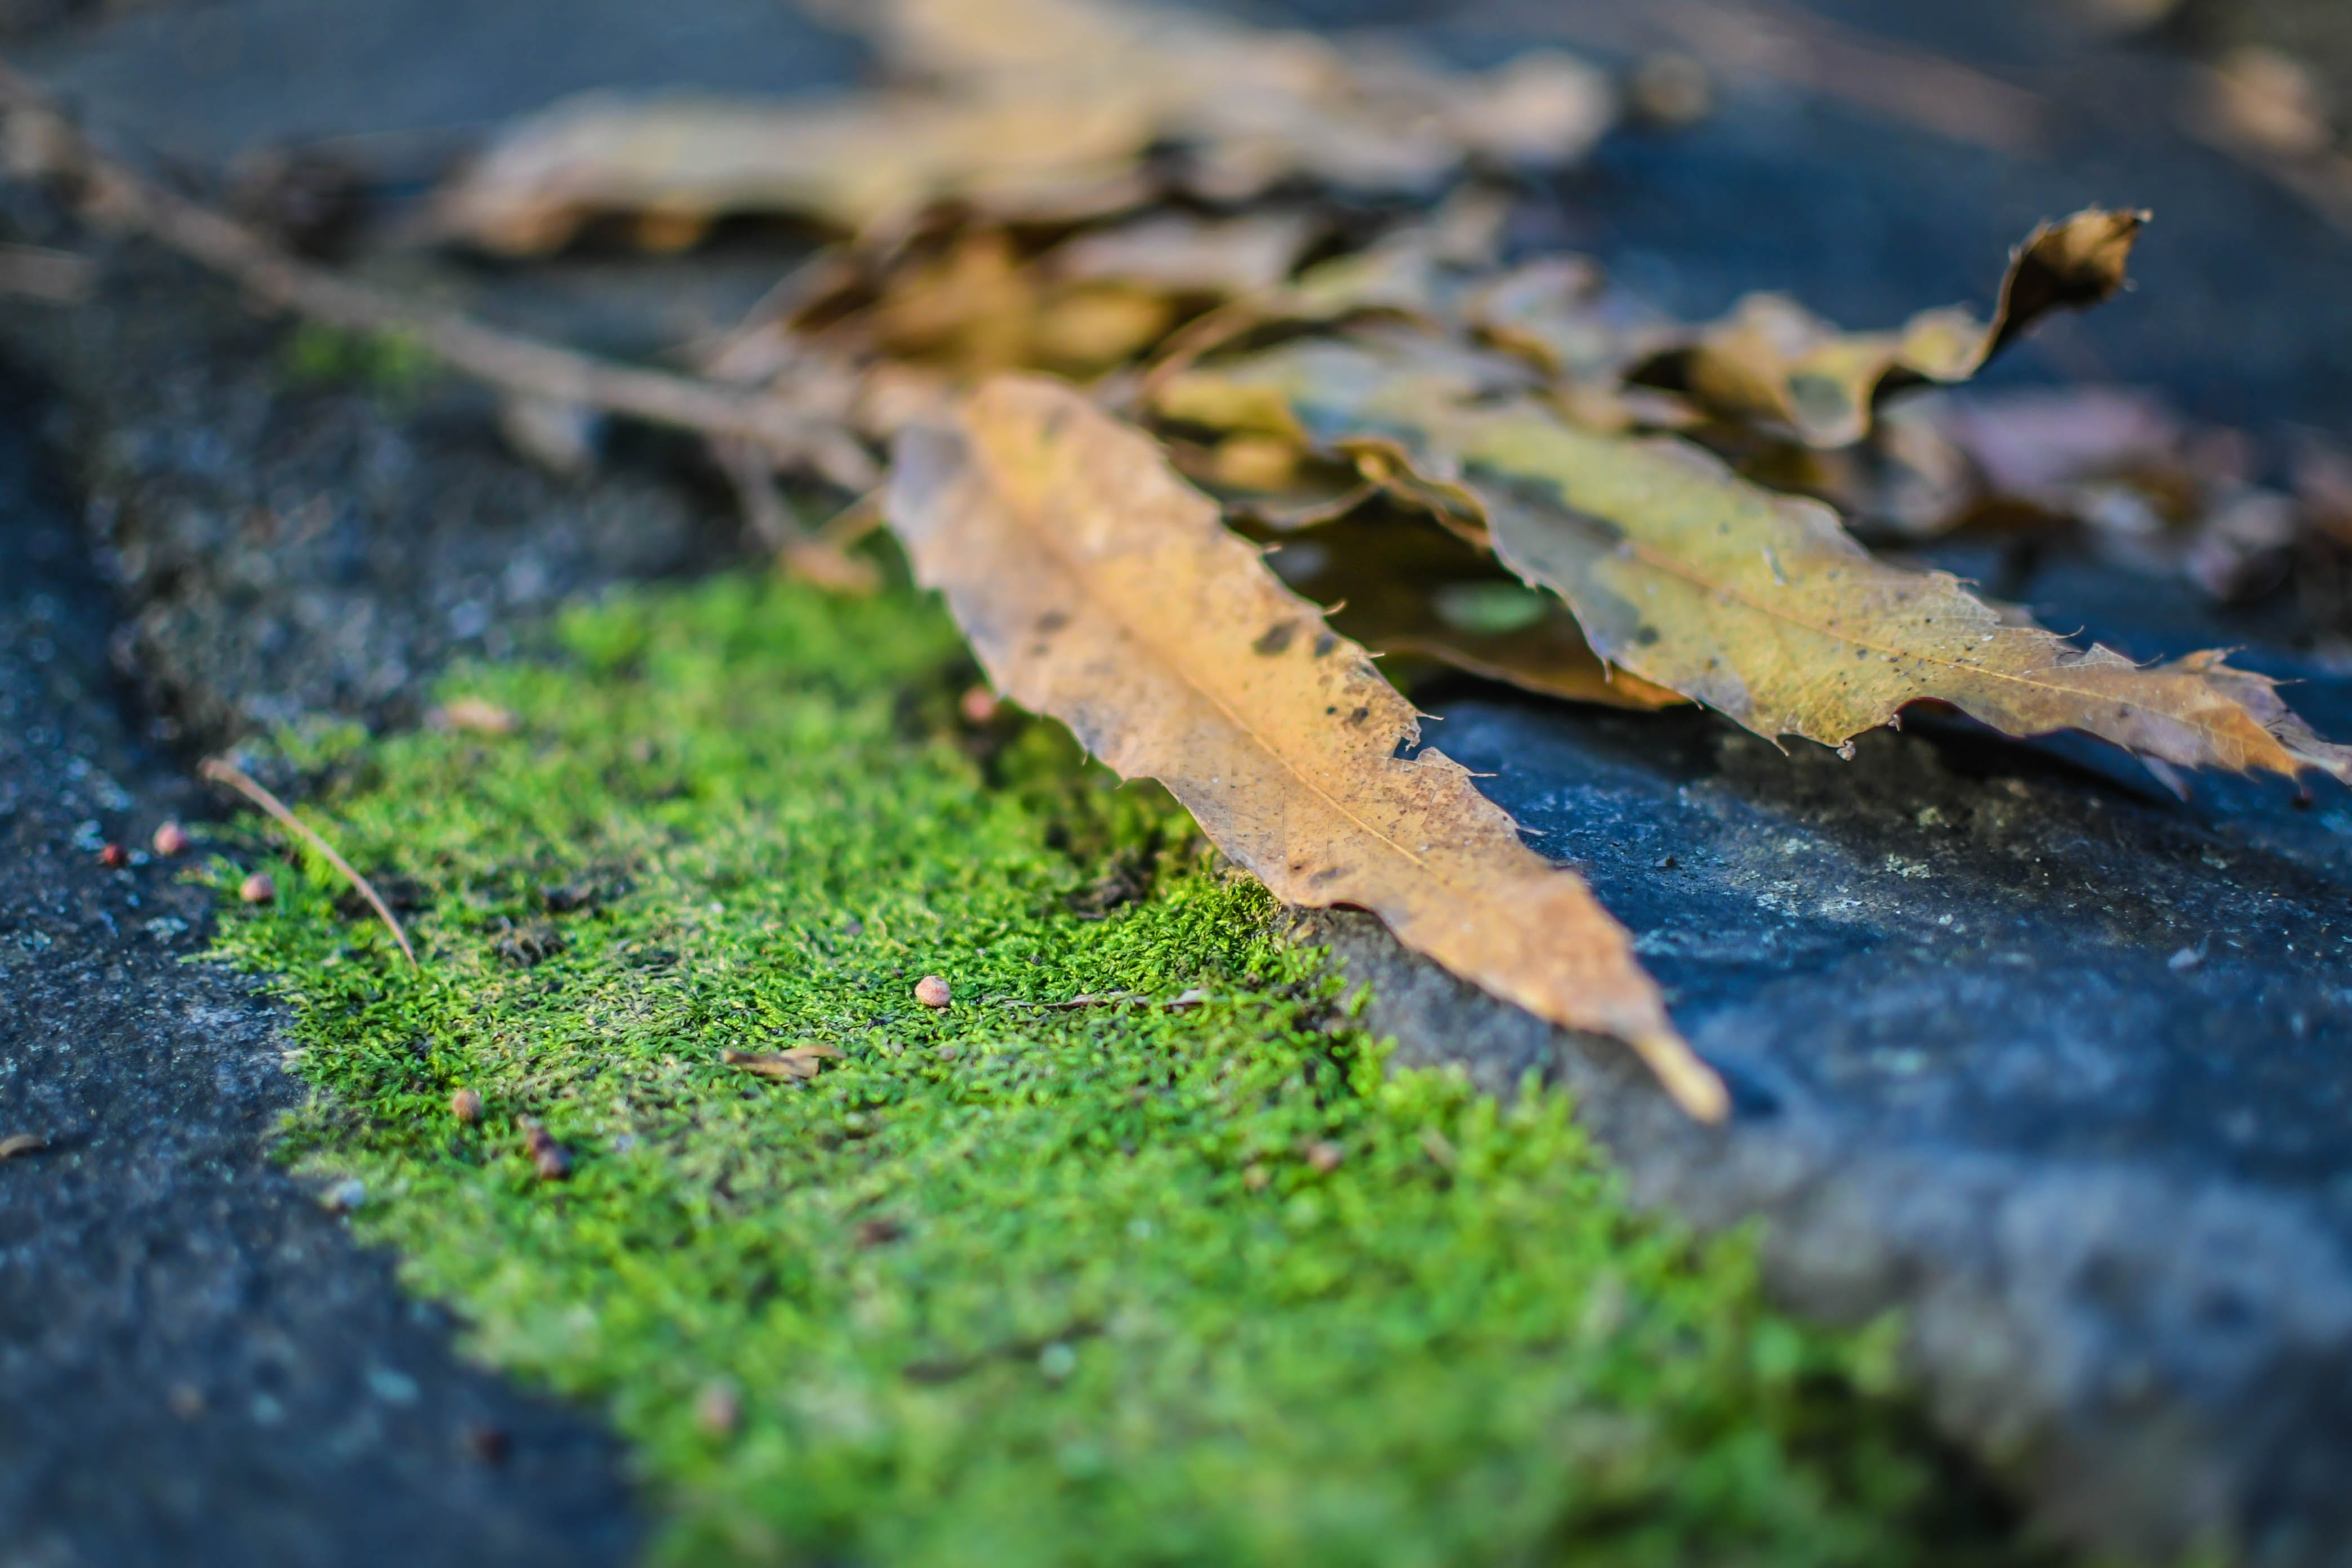 Free stock photo of moss, leaves, rock, outdoors